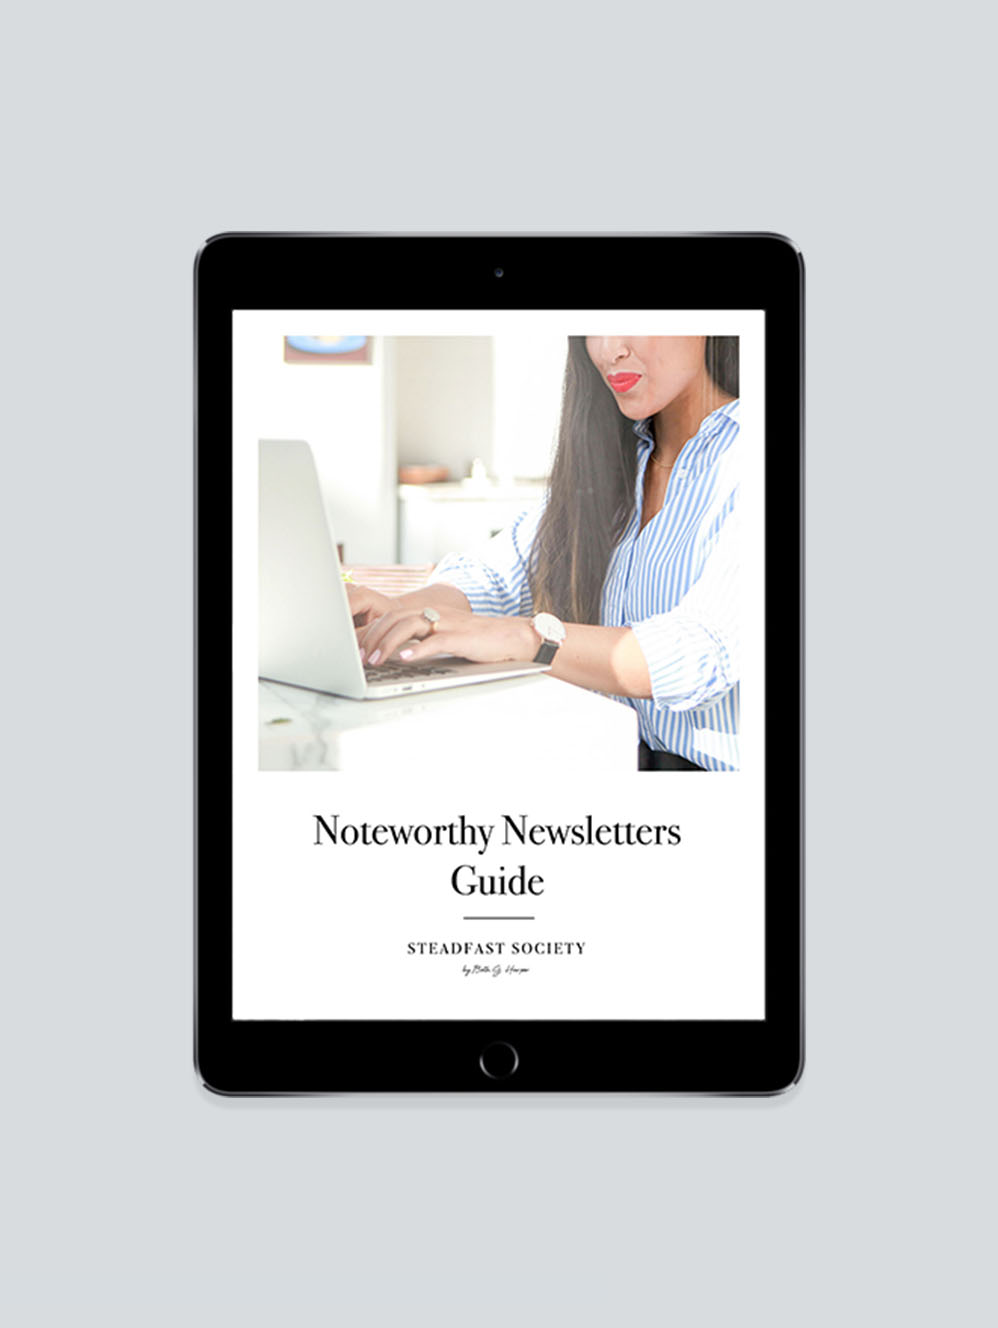 Copy of <p><strong>Noteworthy Newsletters Guide</strong>$99<a href=/noteworthy-newsletters>More →</a></p>